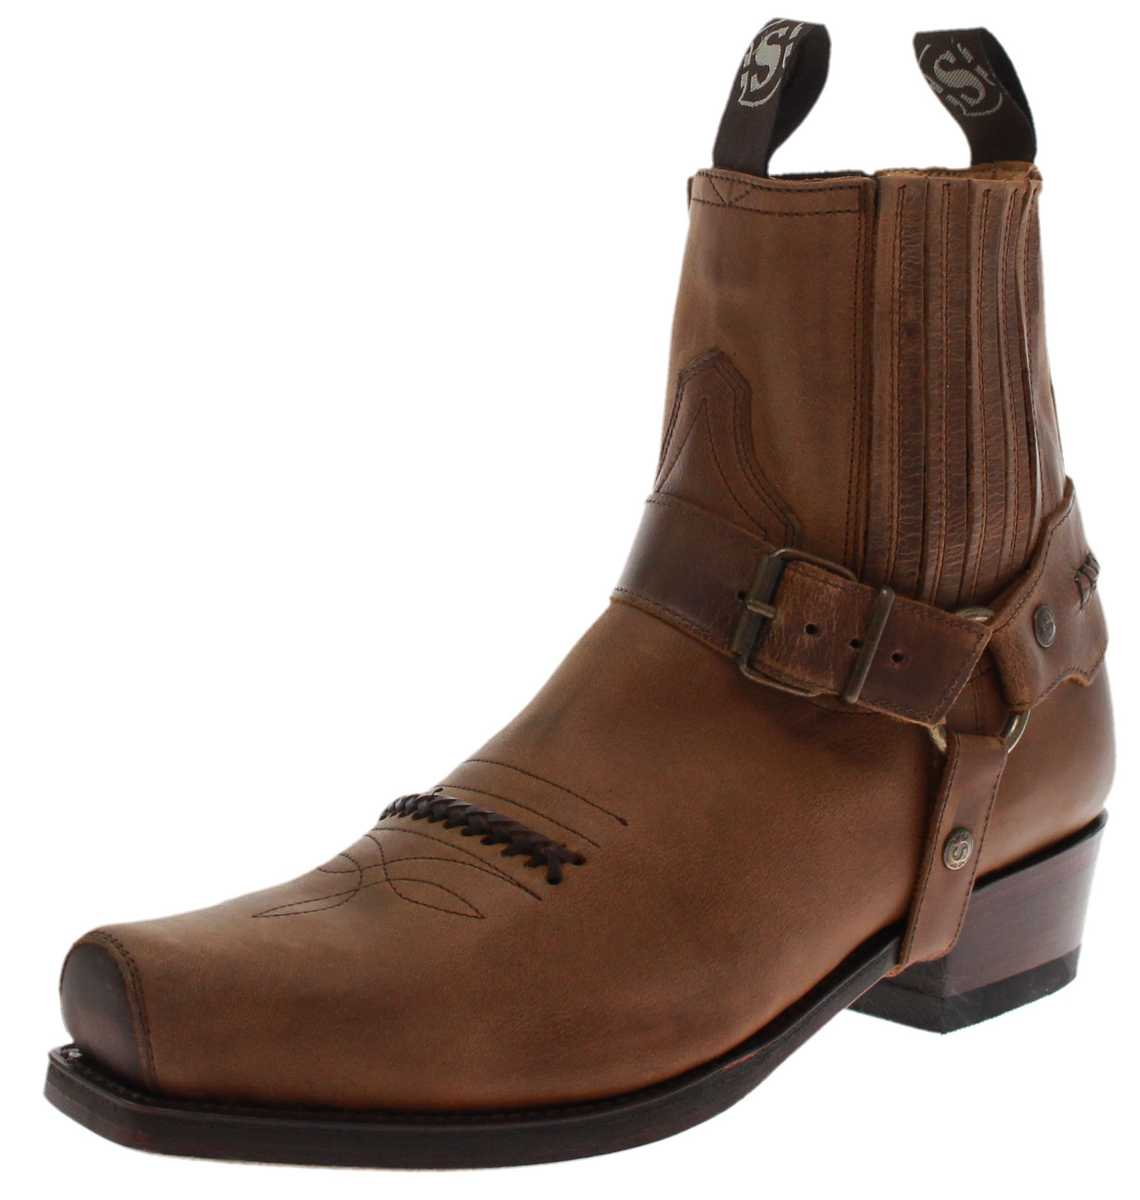 Sendra Boots 6445 Tang biker ankle boot - brown